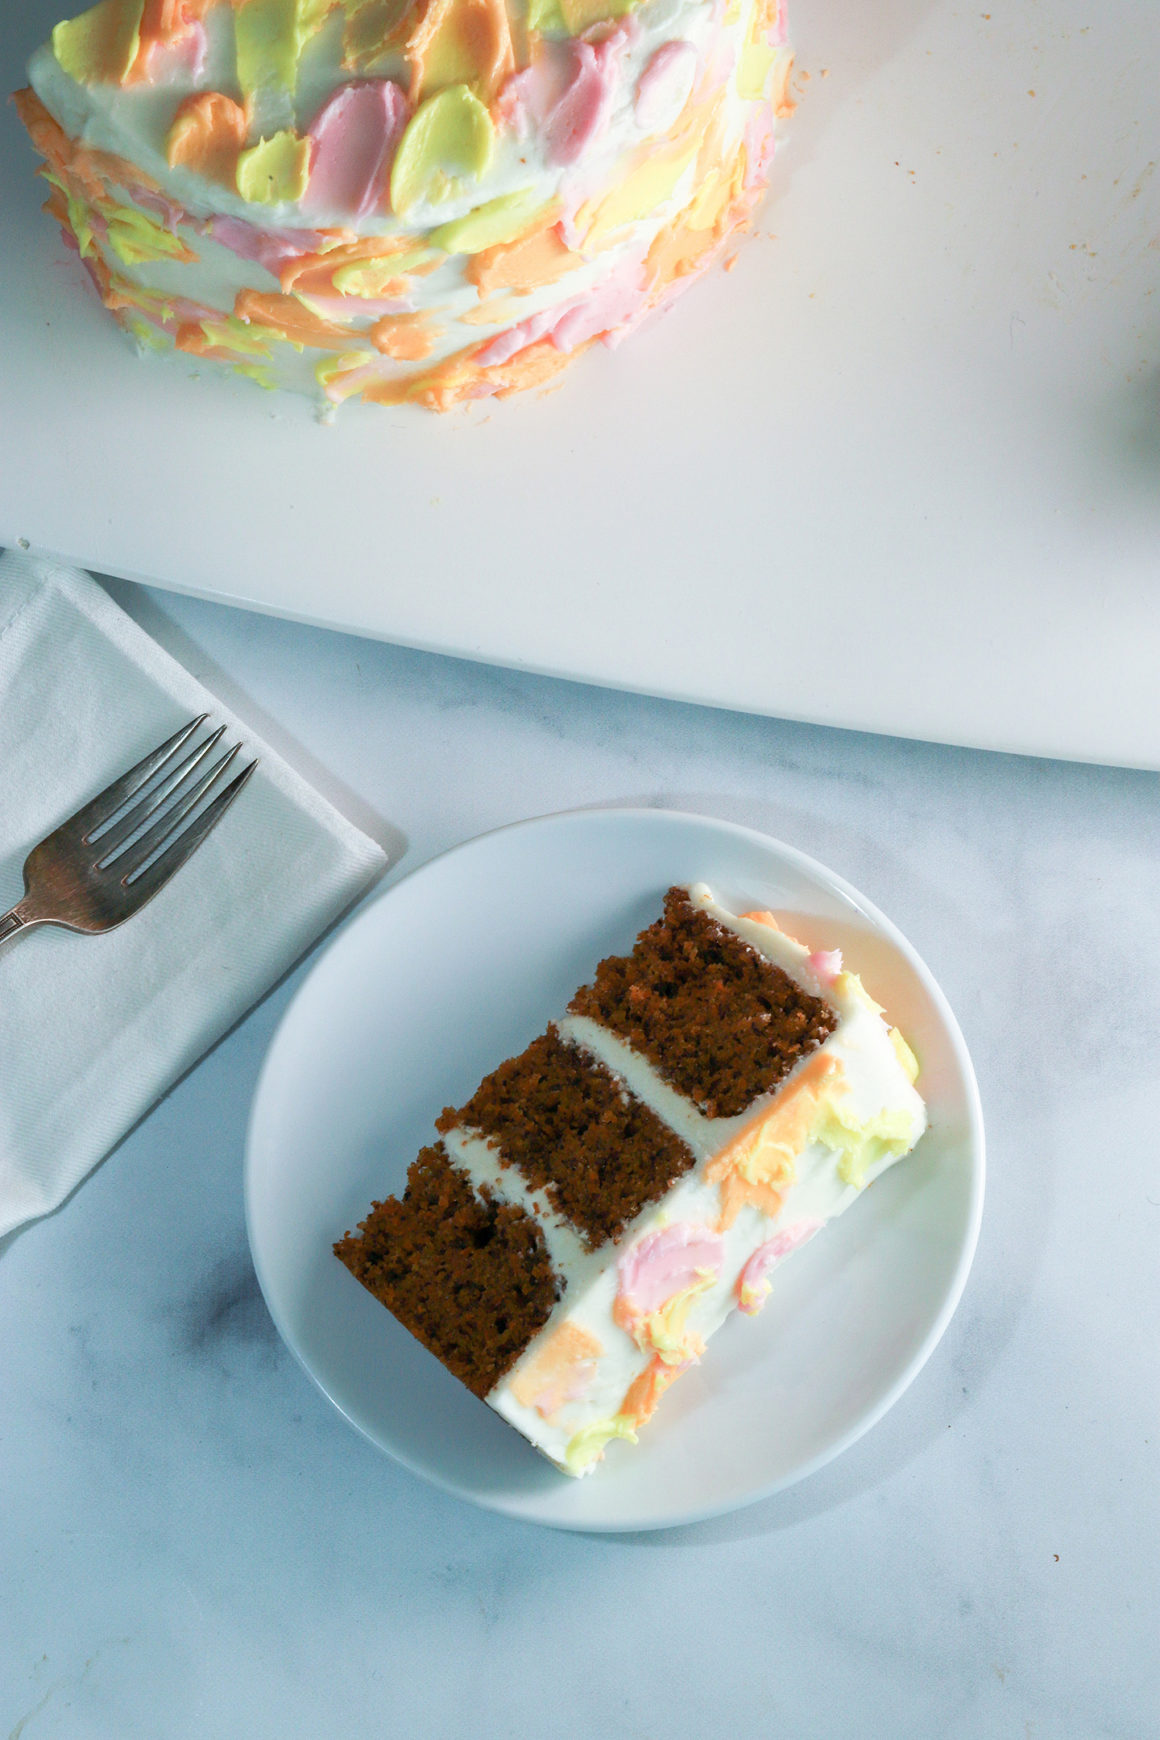 carrot cake slice with pastel colored frosting